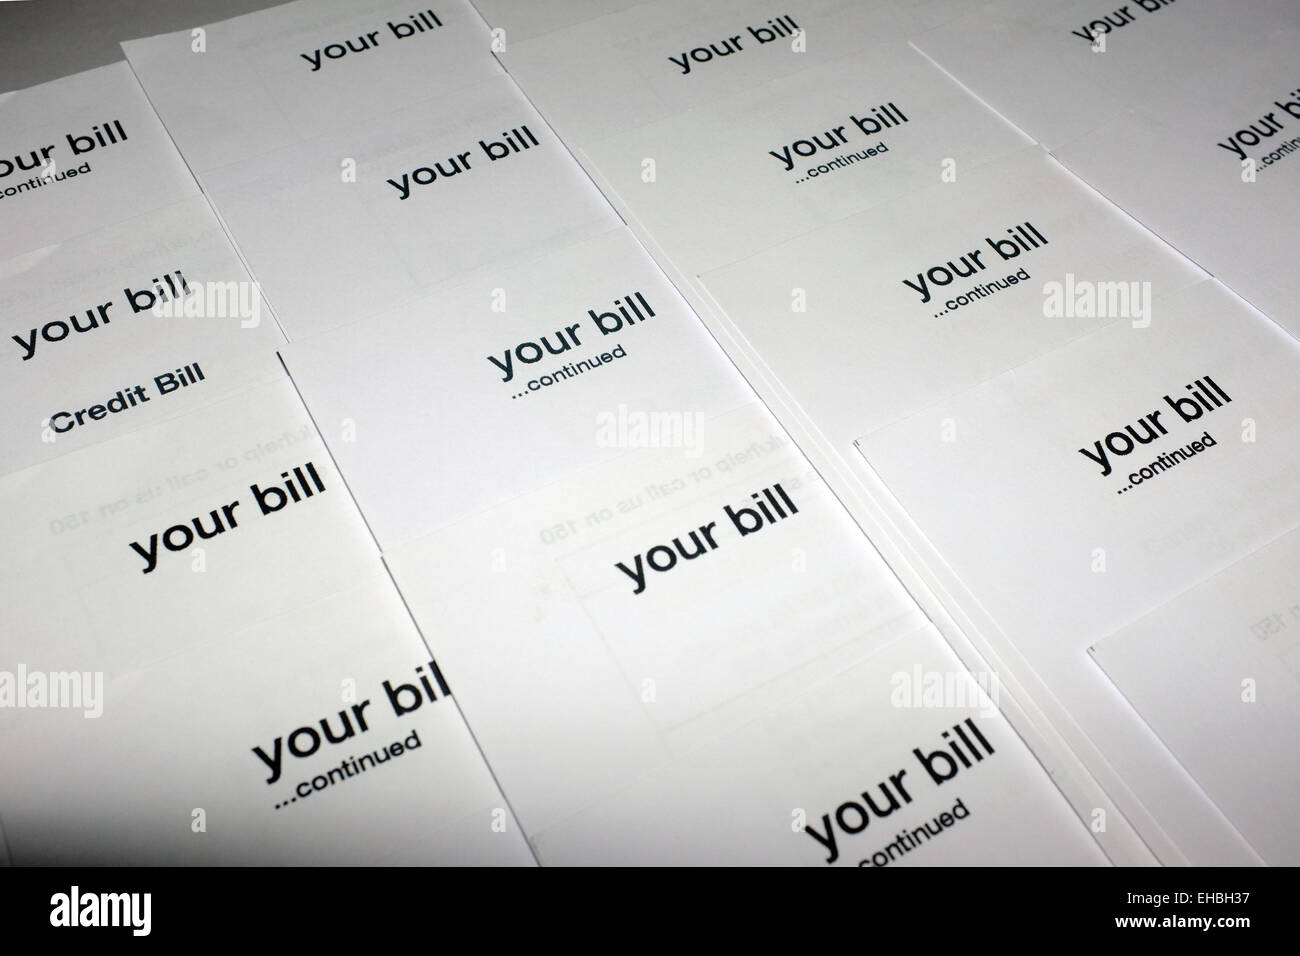 A collection of bills sent via post. - Stock Image